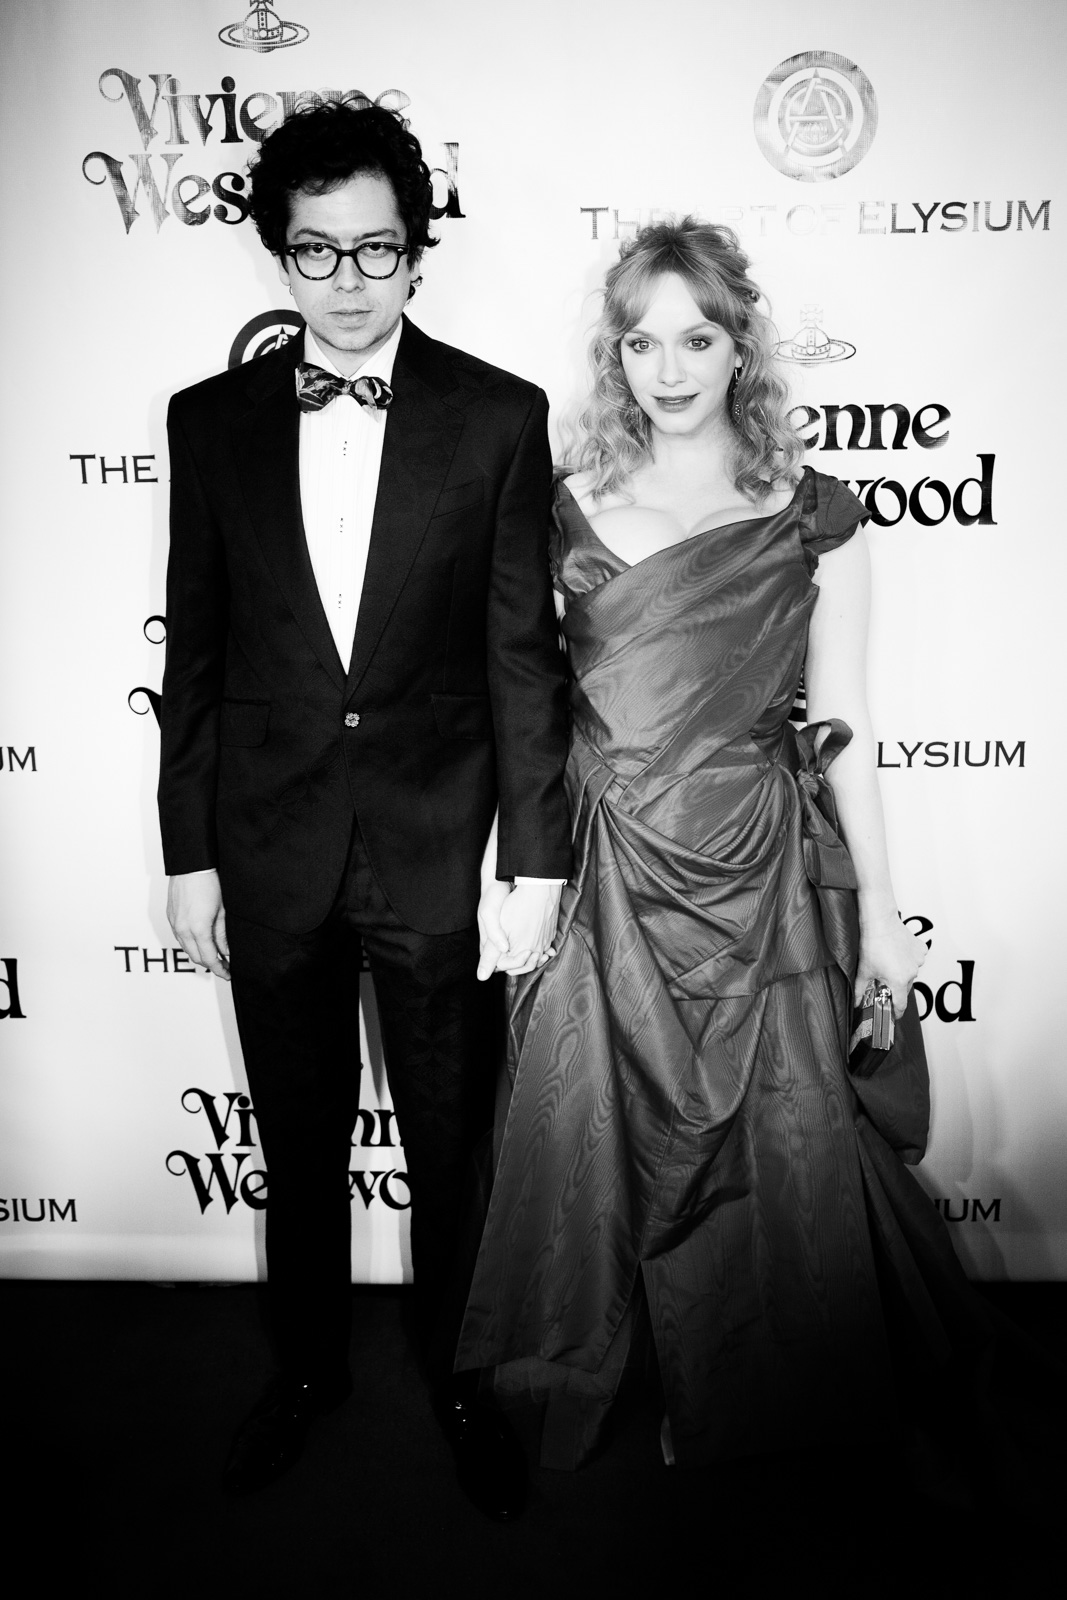 Actor Geoffrey Arend and actress Christina Hendricks attend The Art of Elysium 2016 HEAVEN Gala presented by Vivienne Westwood & Andreas Kronthaler at 3LABS on January 9, 2016 in Culver City, California.